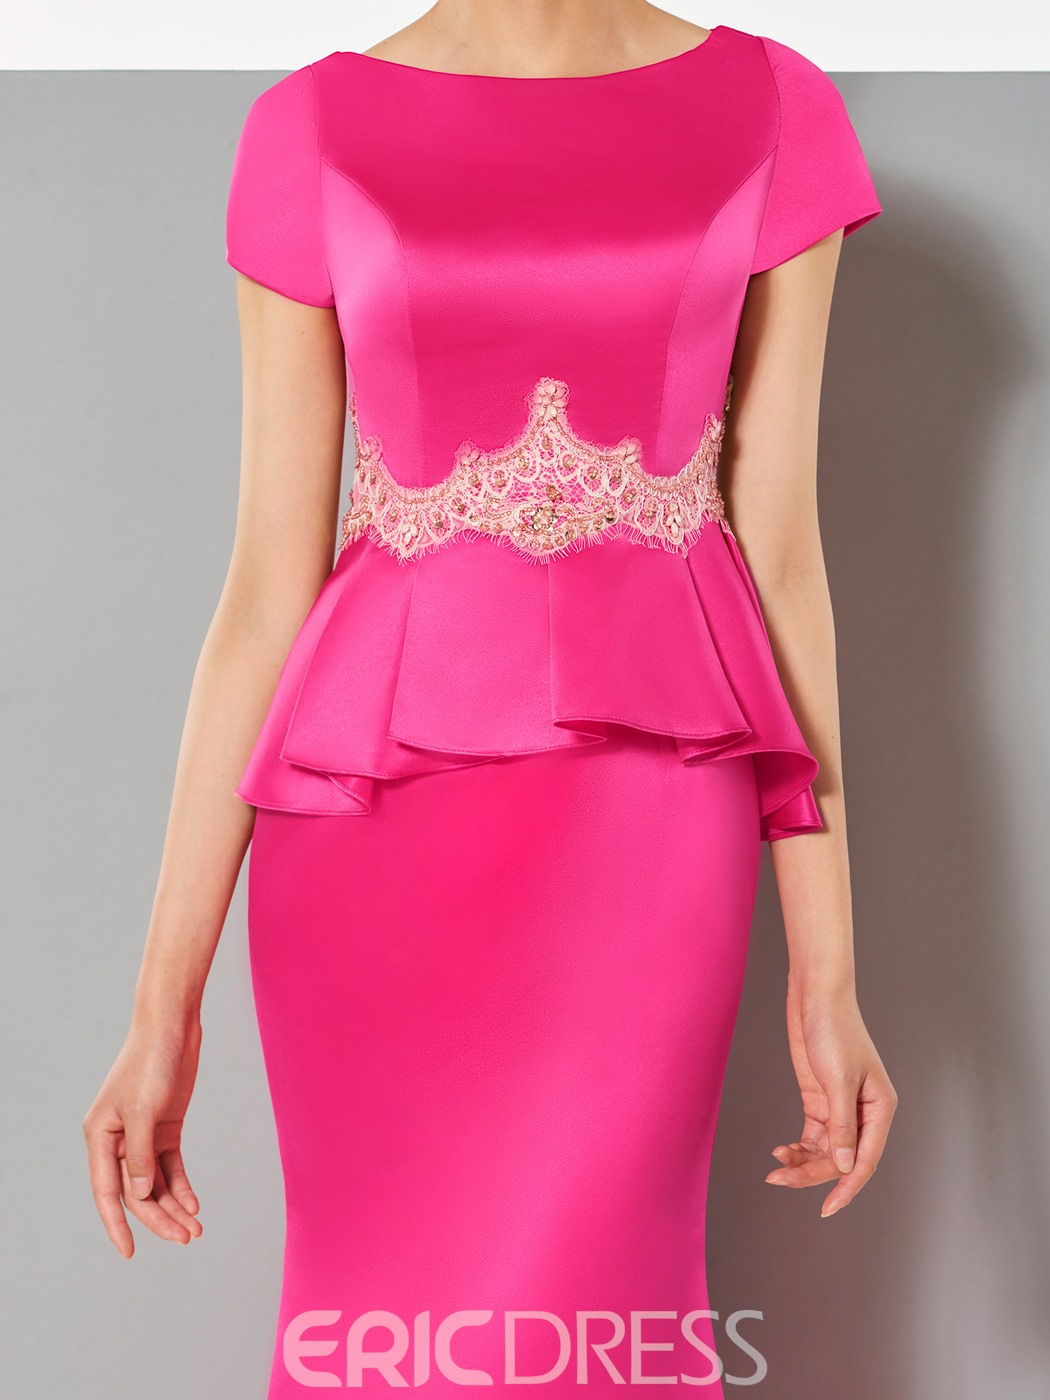 Ericdress Short Sleeves Ruffles Appliques Mermaid Evening Dress With Sweep Train